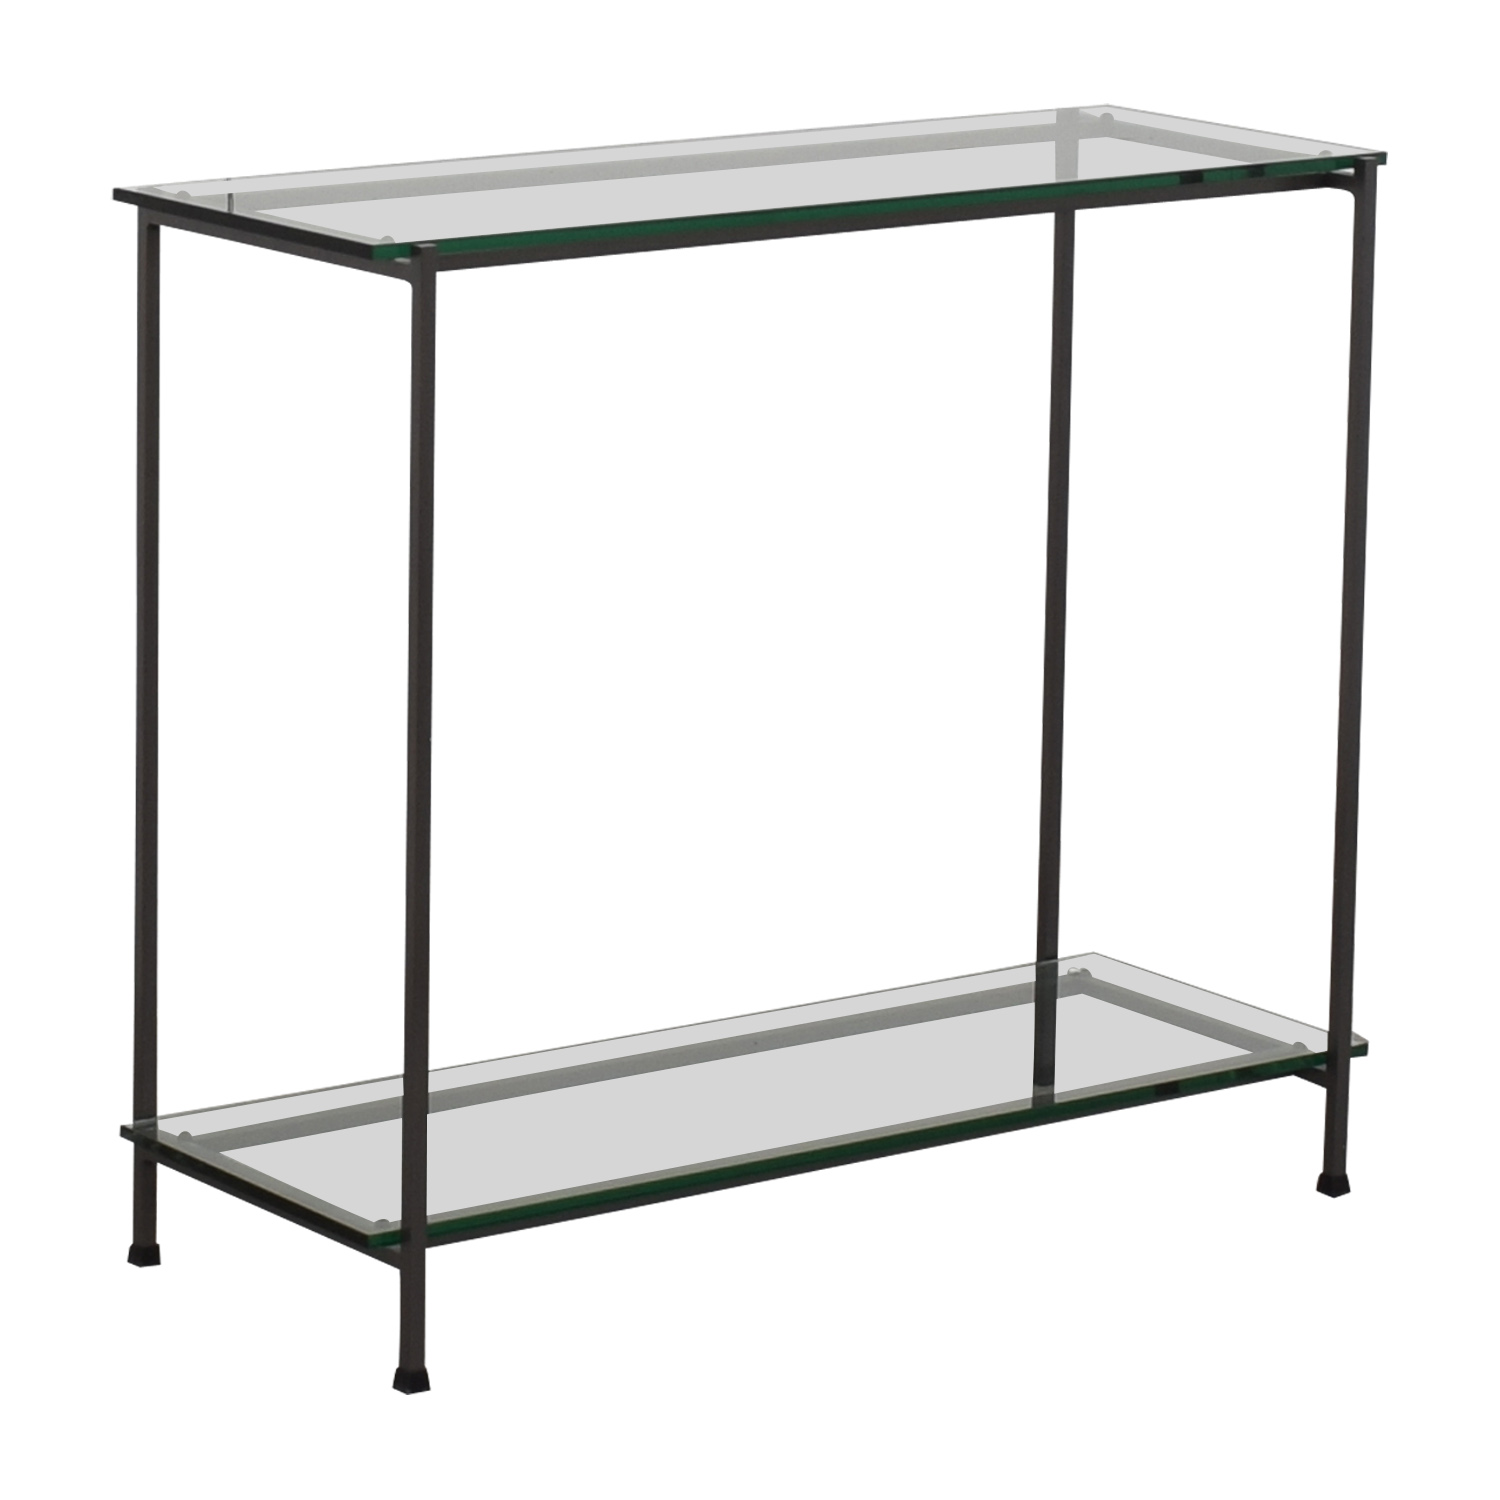 Crate & Barrel Crate & Barrel Glass Console used